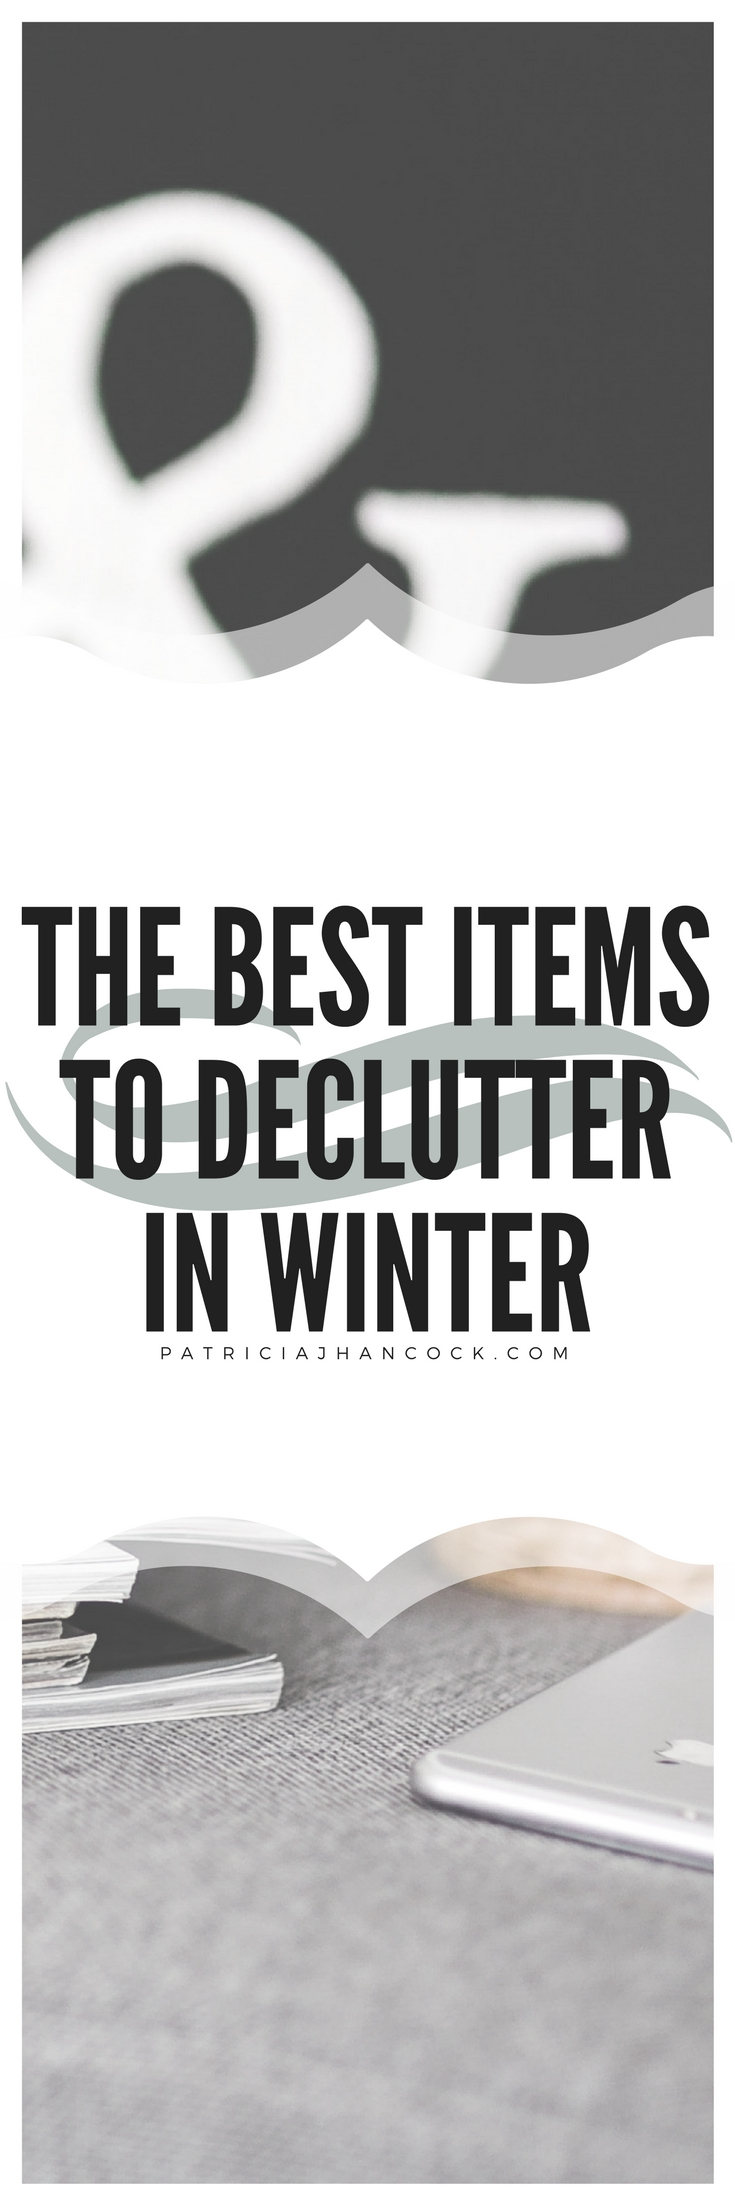 A helpful guide on what items are the best to organize and declutter while you're inside for the winter. No need to get on your hats and coats, we're going to declutter inside our comfort and warmth of our home today! Get on your comfiest of pants and get ready to declutter these important items in your home.